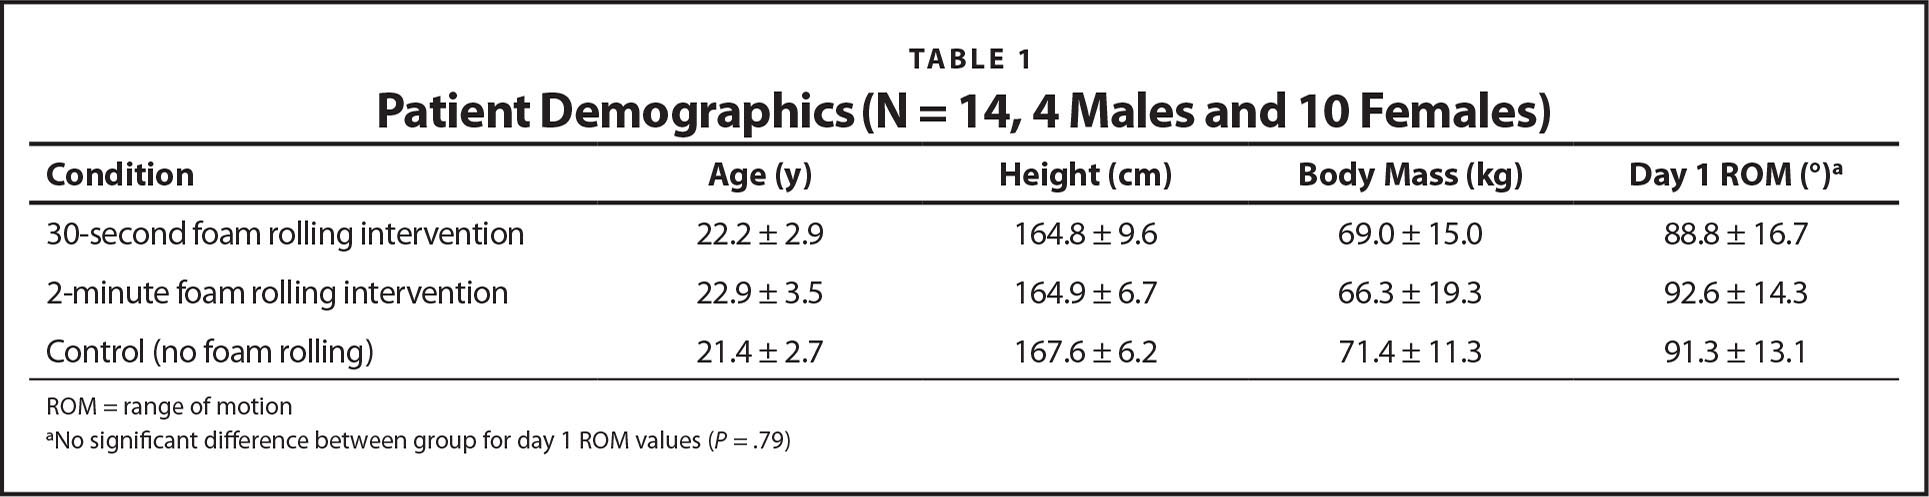 Patient Demographics (N = 14, 4 Males and 10 Females)